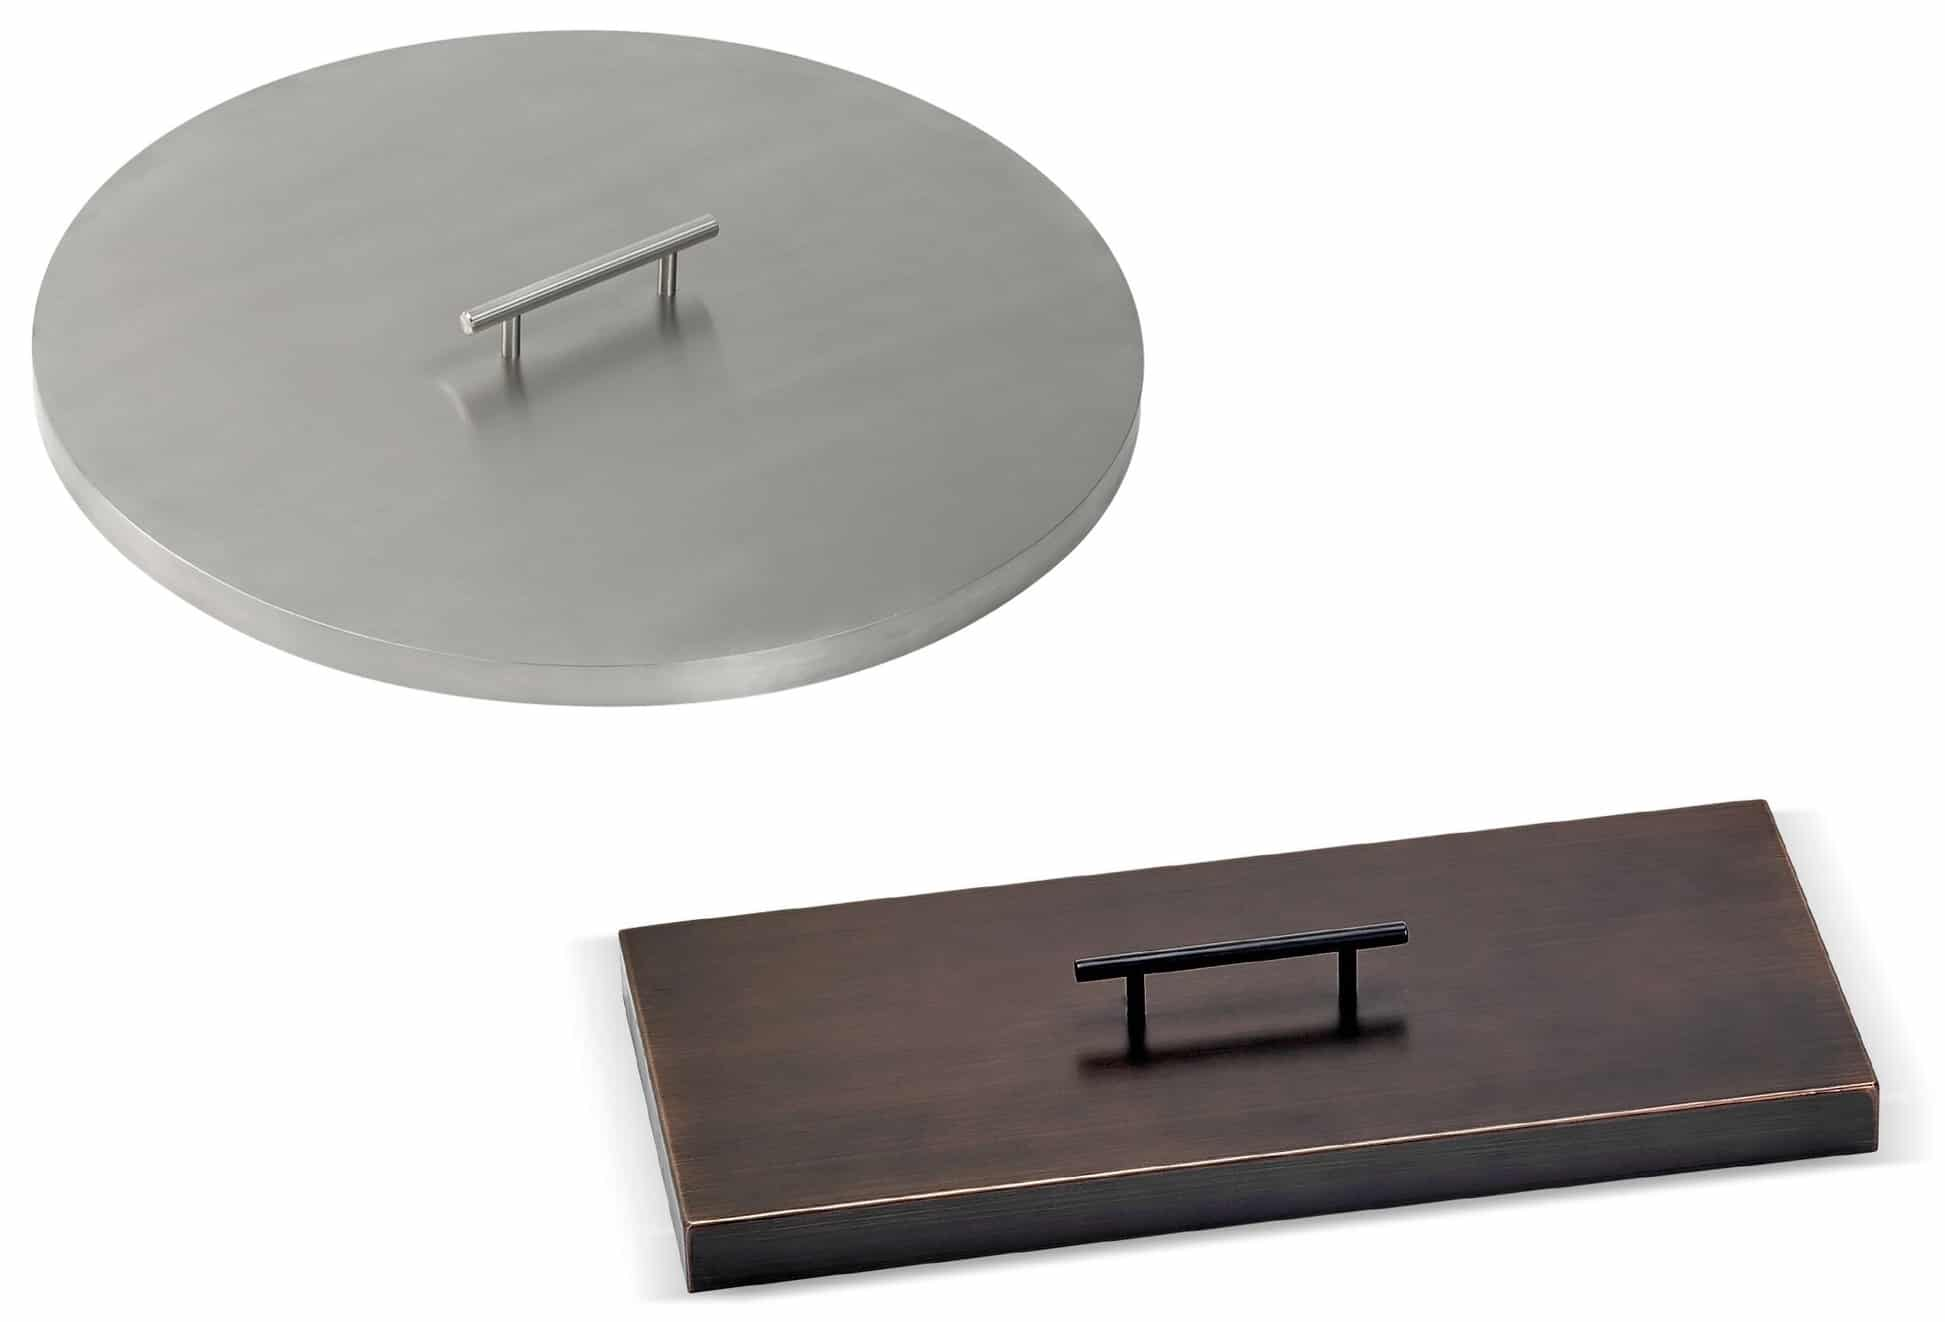 Steel Covers for Fire Pits